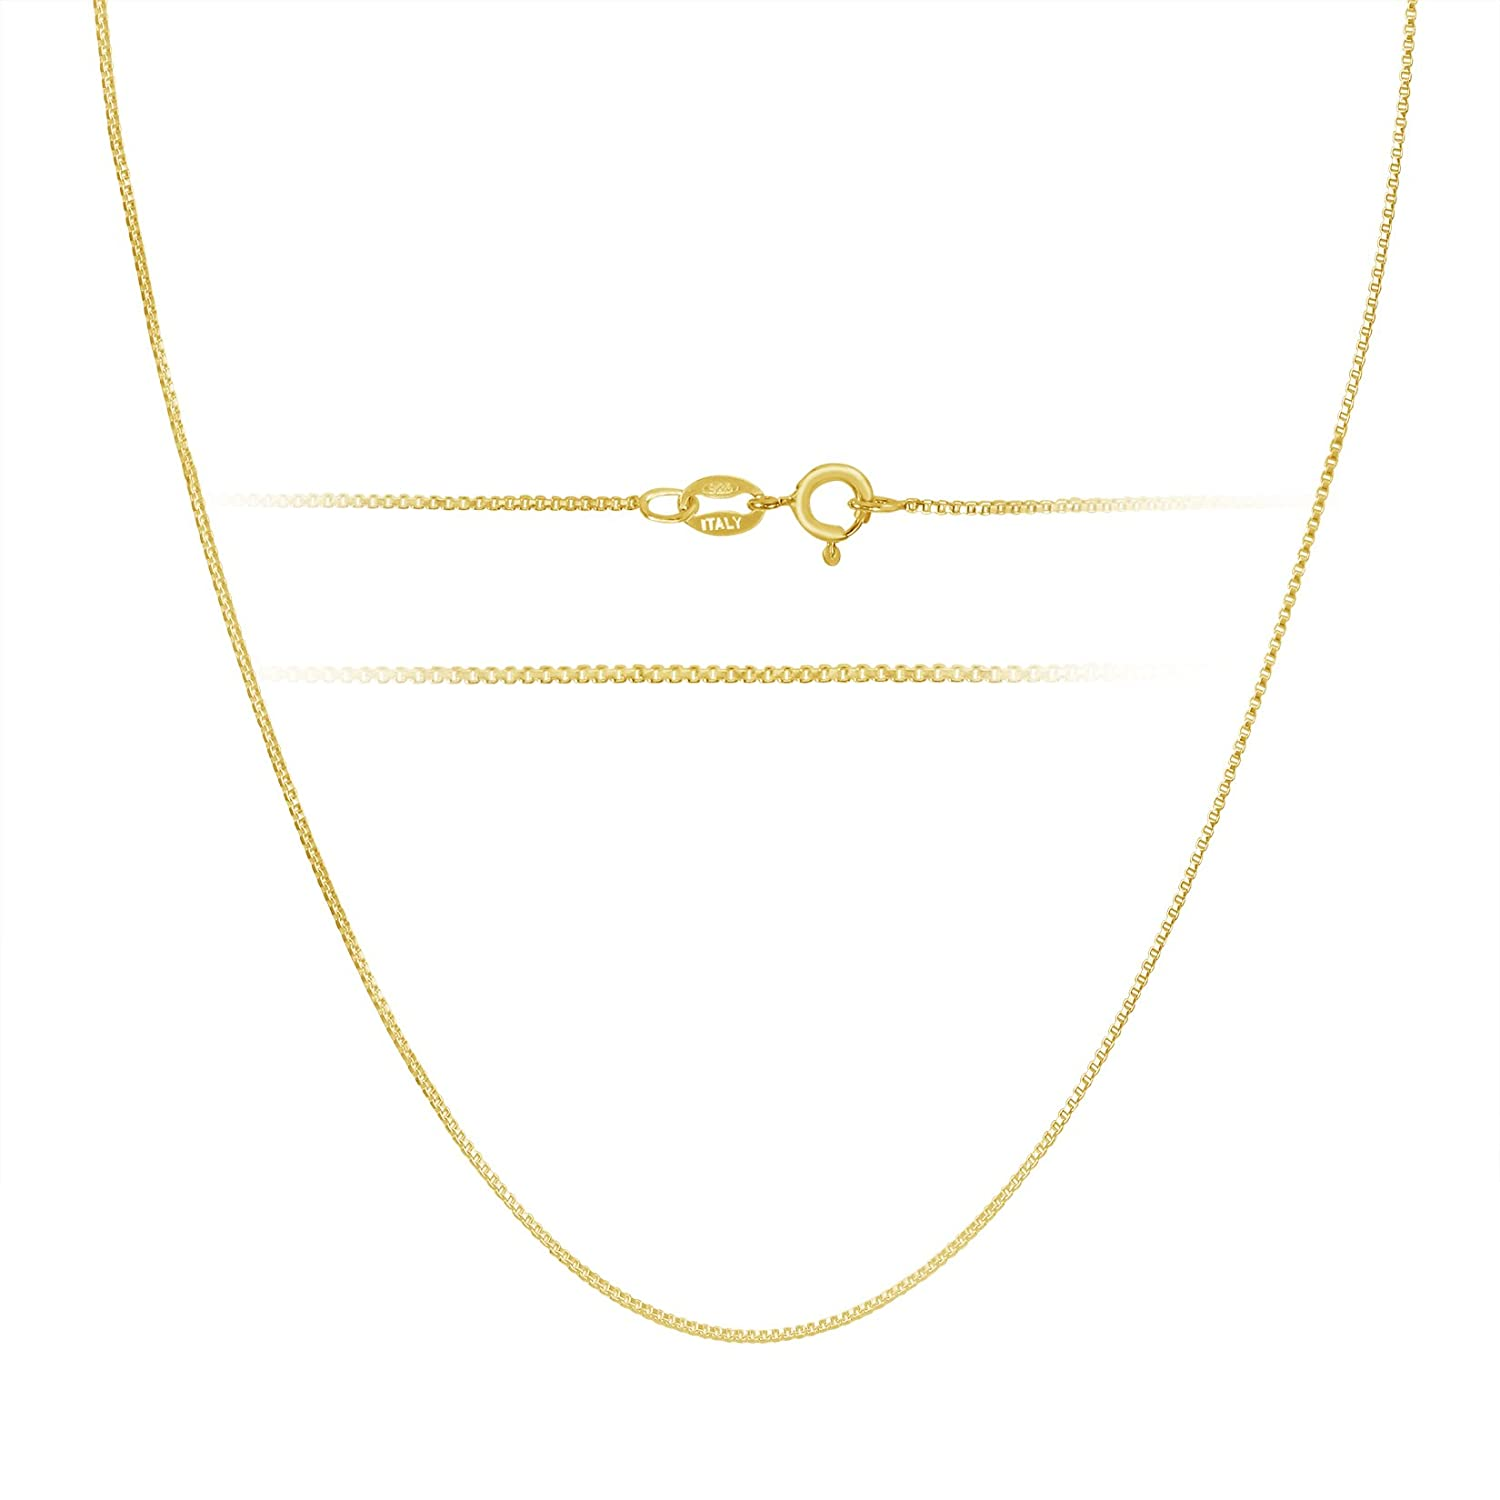 Kezef 18k Gold over Sterling Silver 1mm Box Chain Necklace Made in Italy All Sizes LnKjF